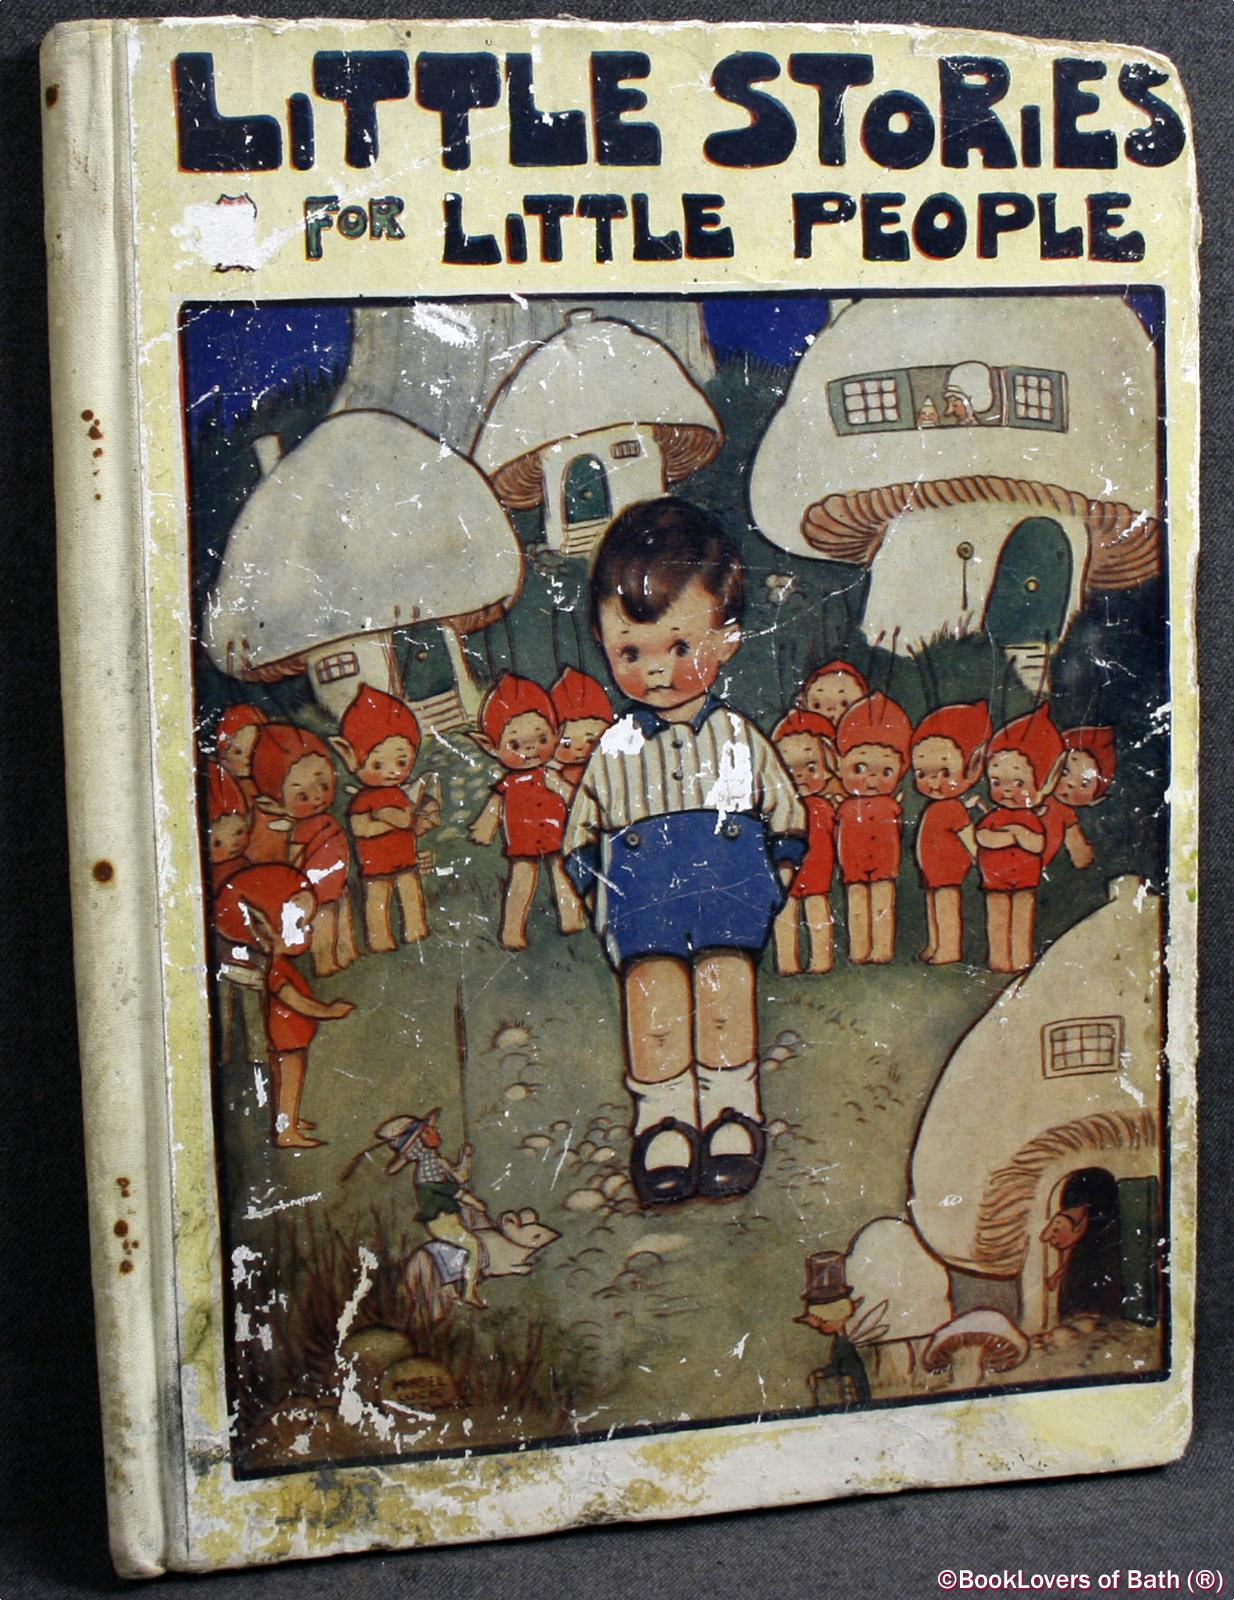 Little Stories for Little People - Anon